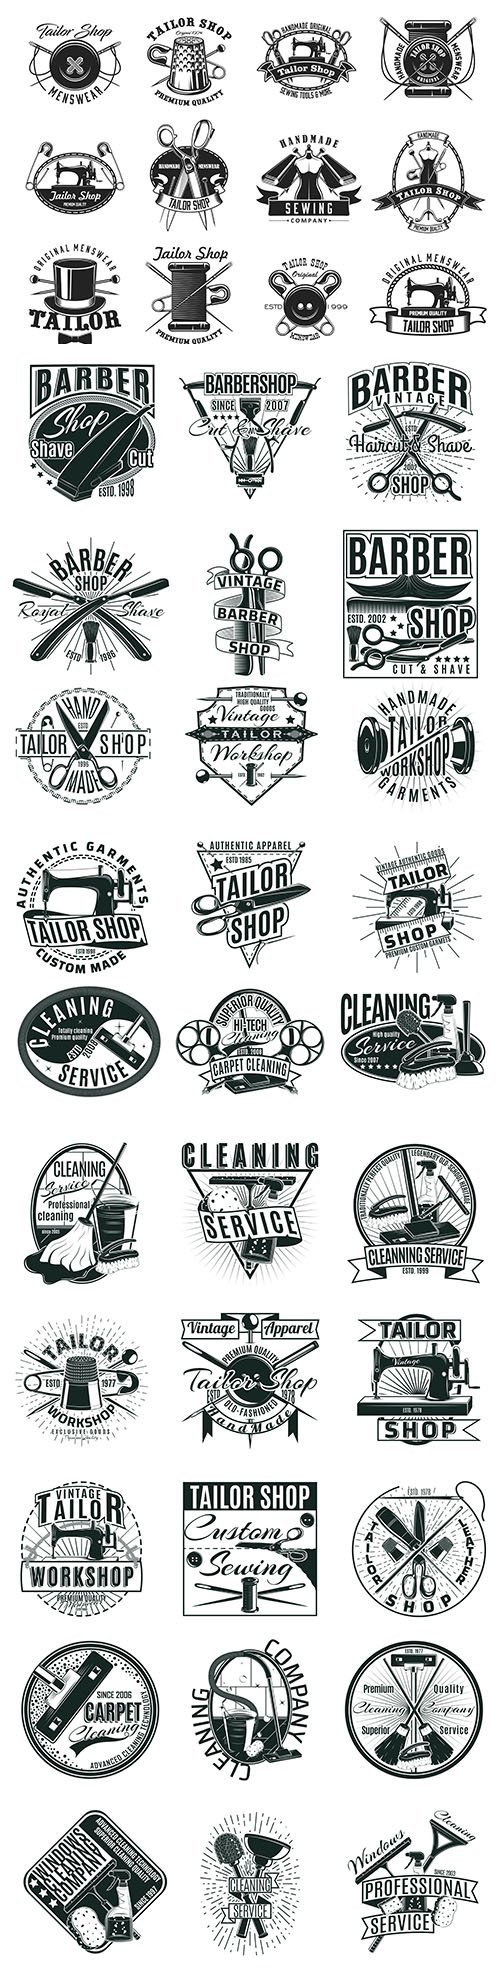 Vintage antique emblems and logos with text design 2